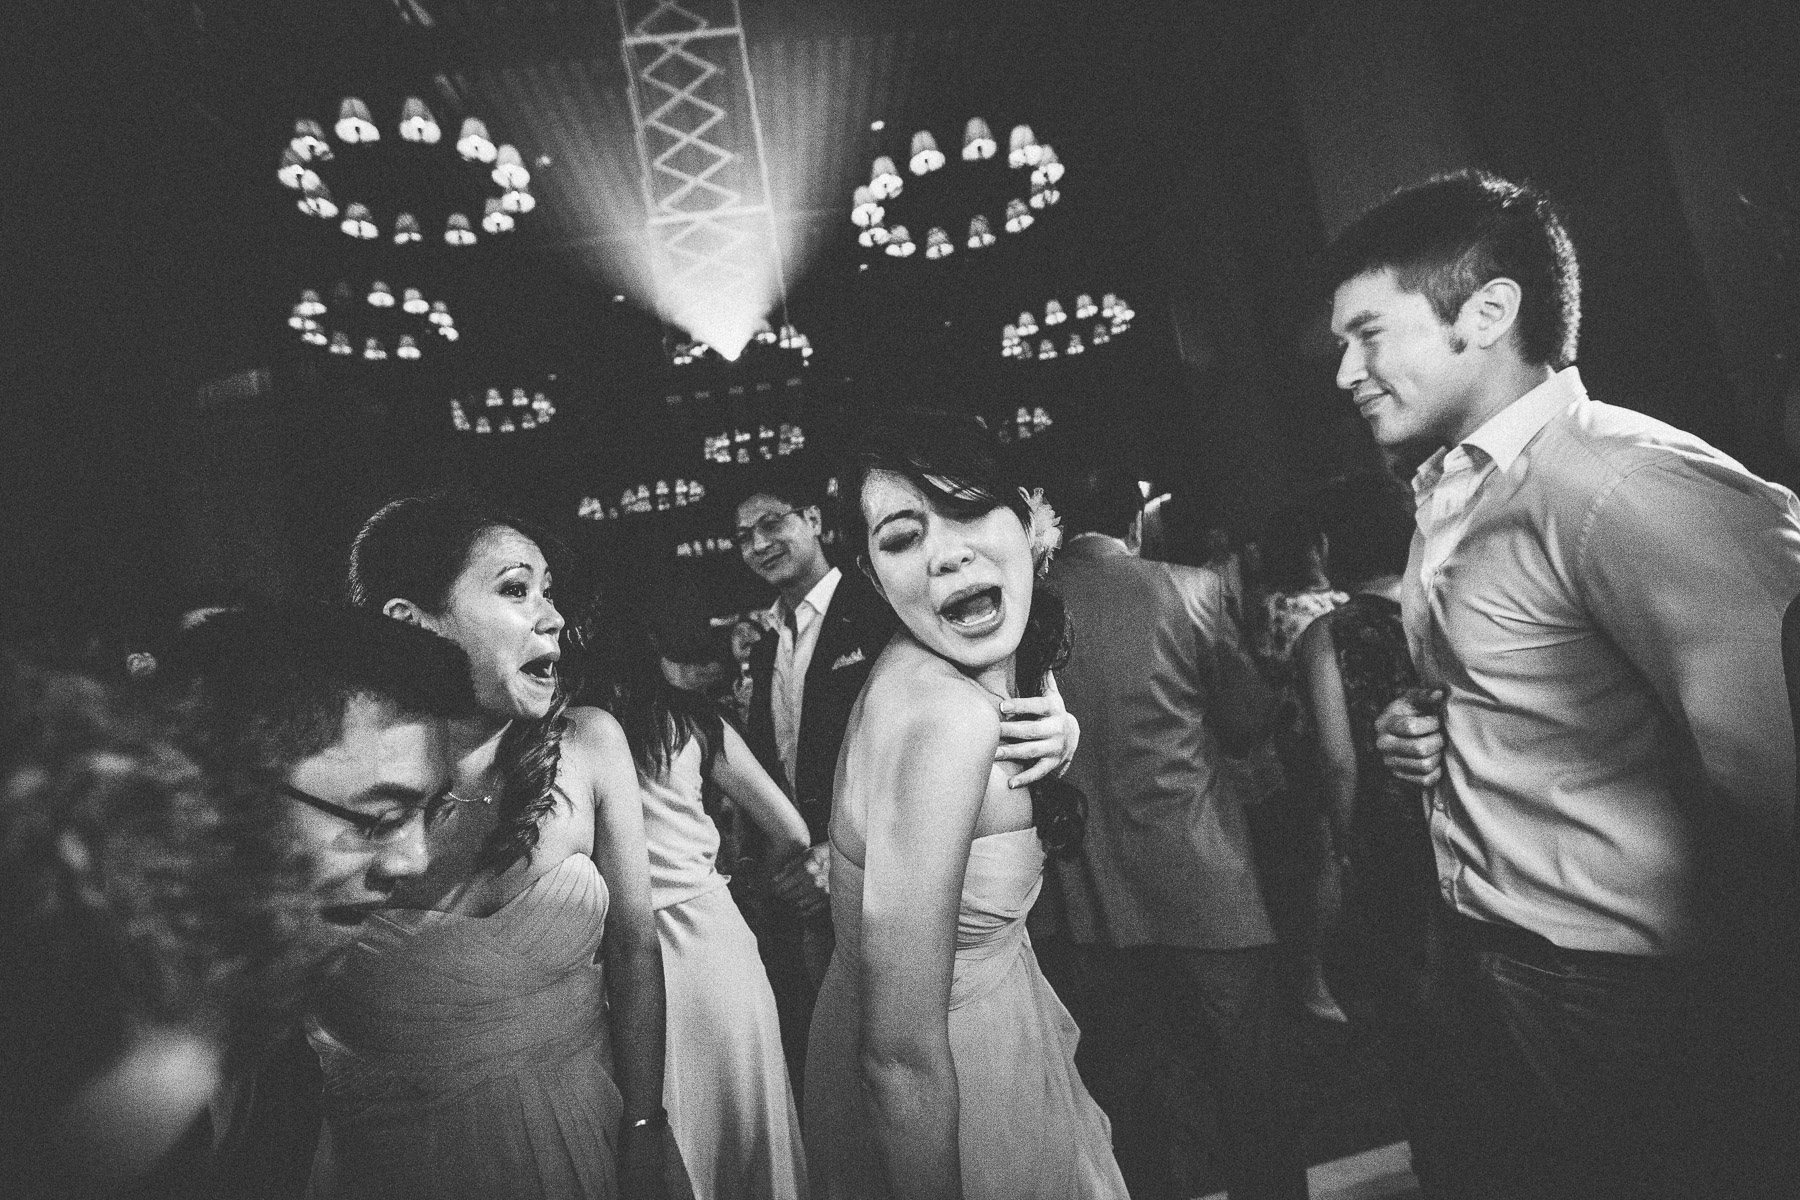 Aaron-Joel-Santos-Wedding-Photography-81